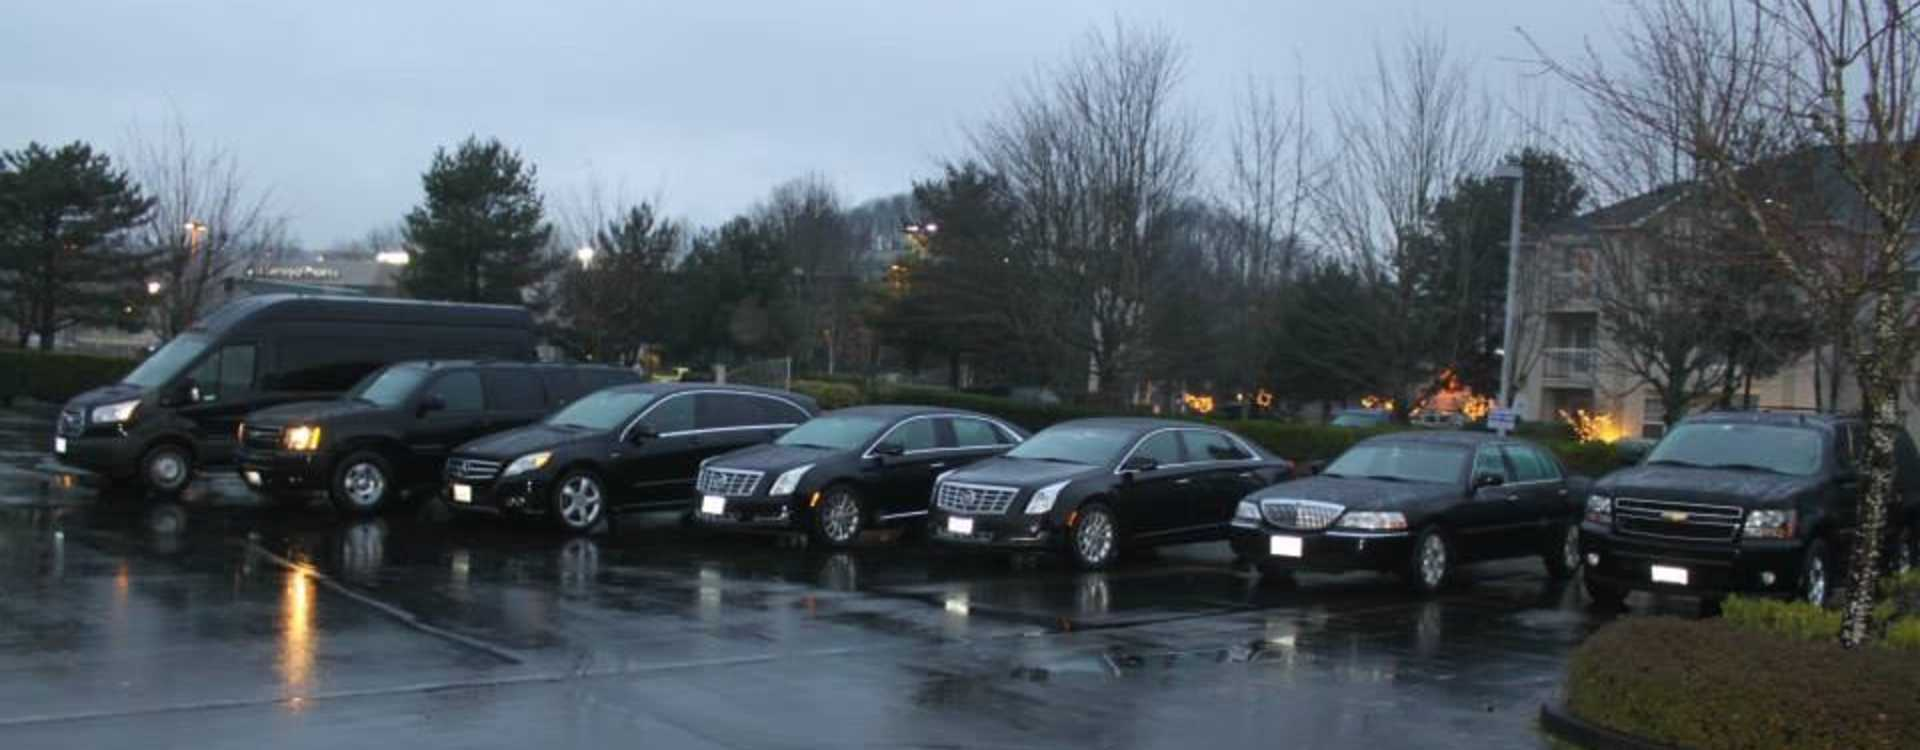 Pacific Northwest Limousine Services, LLC